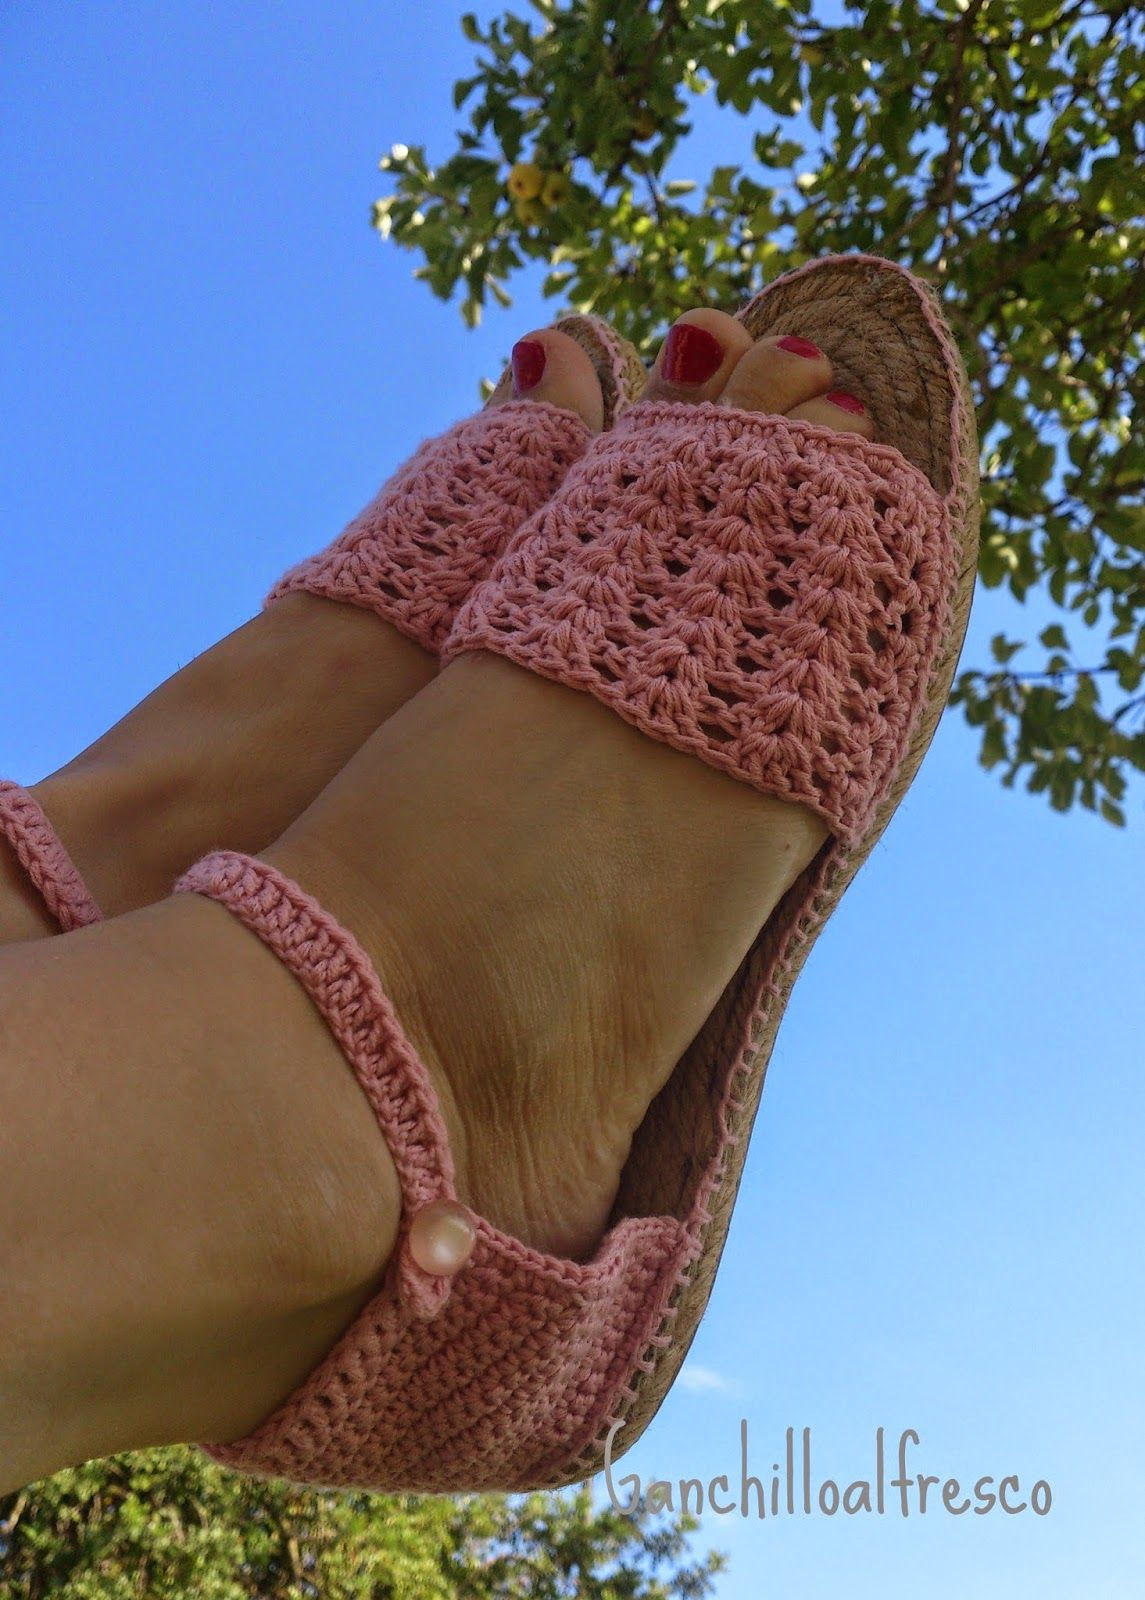 Ganchillo al fresco: Ganchillo | CROCHET SOCK & FOOTWEAR | Pinterest ...